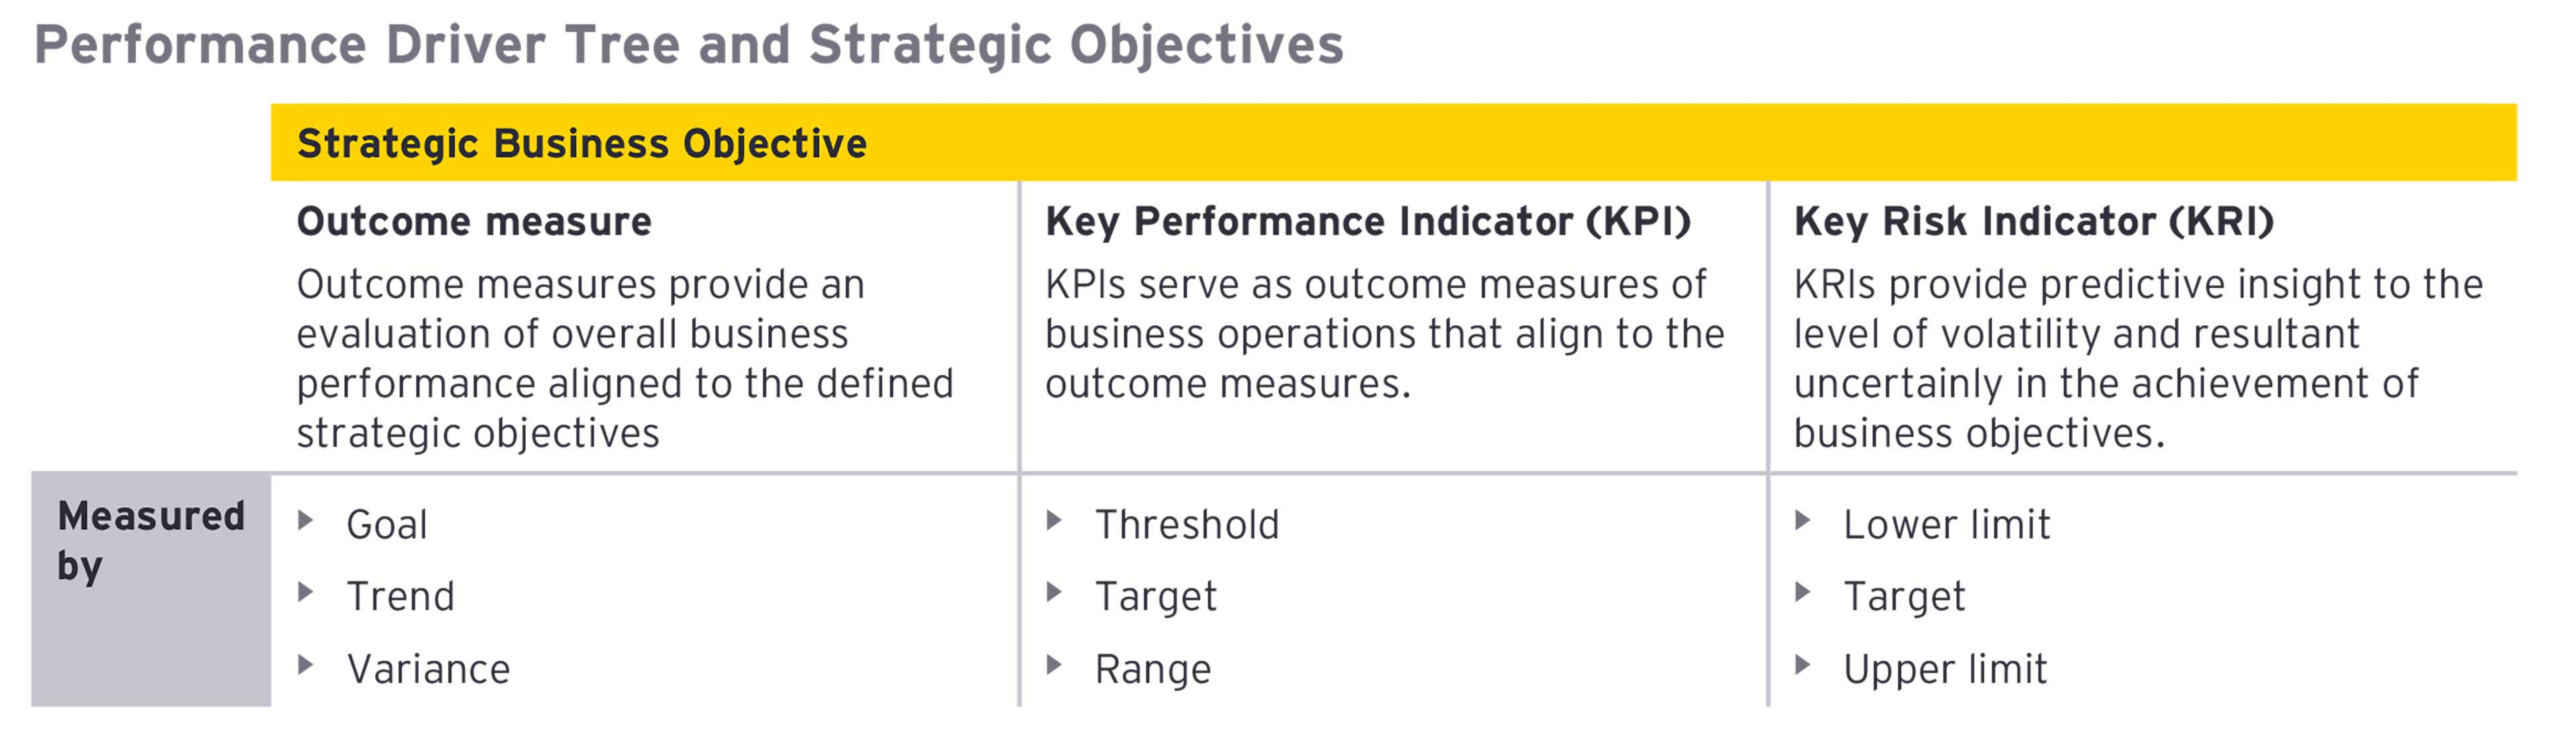 Performance Driver Strategic Objectives